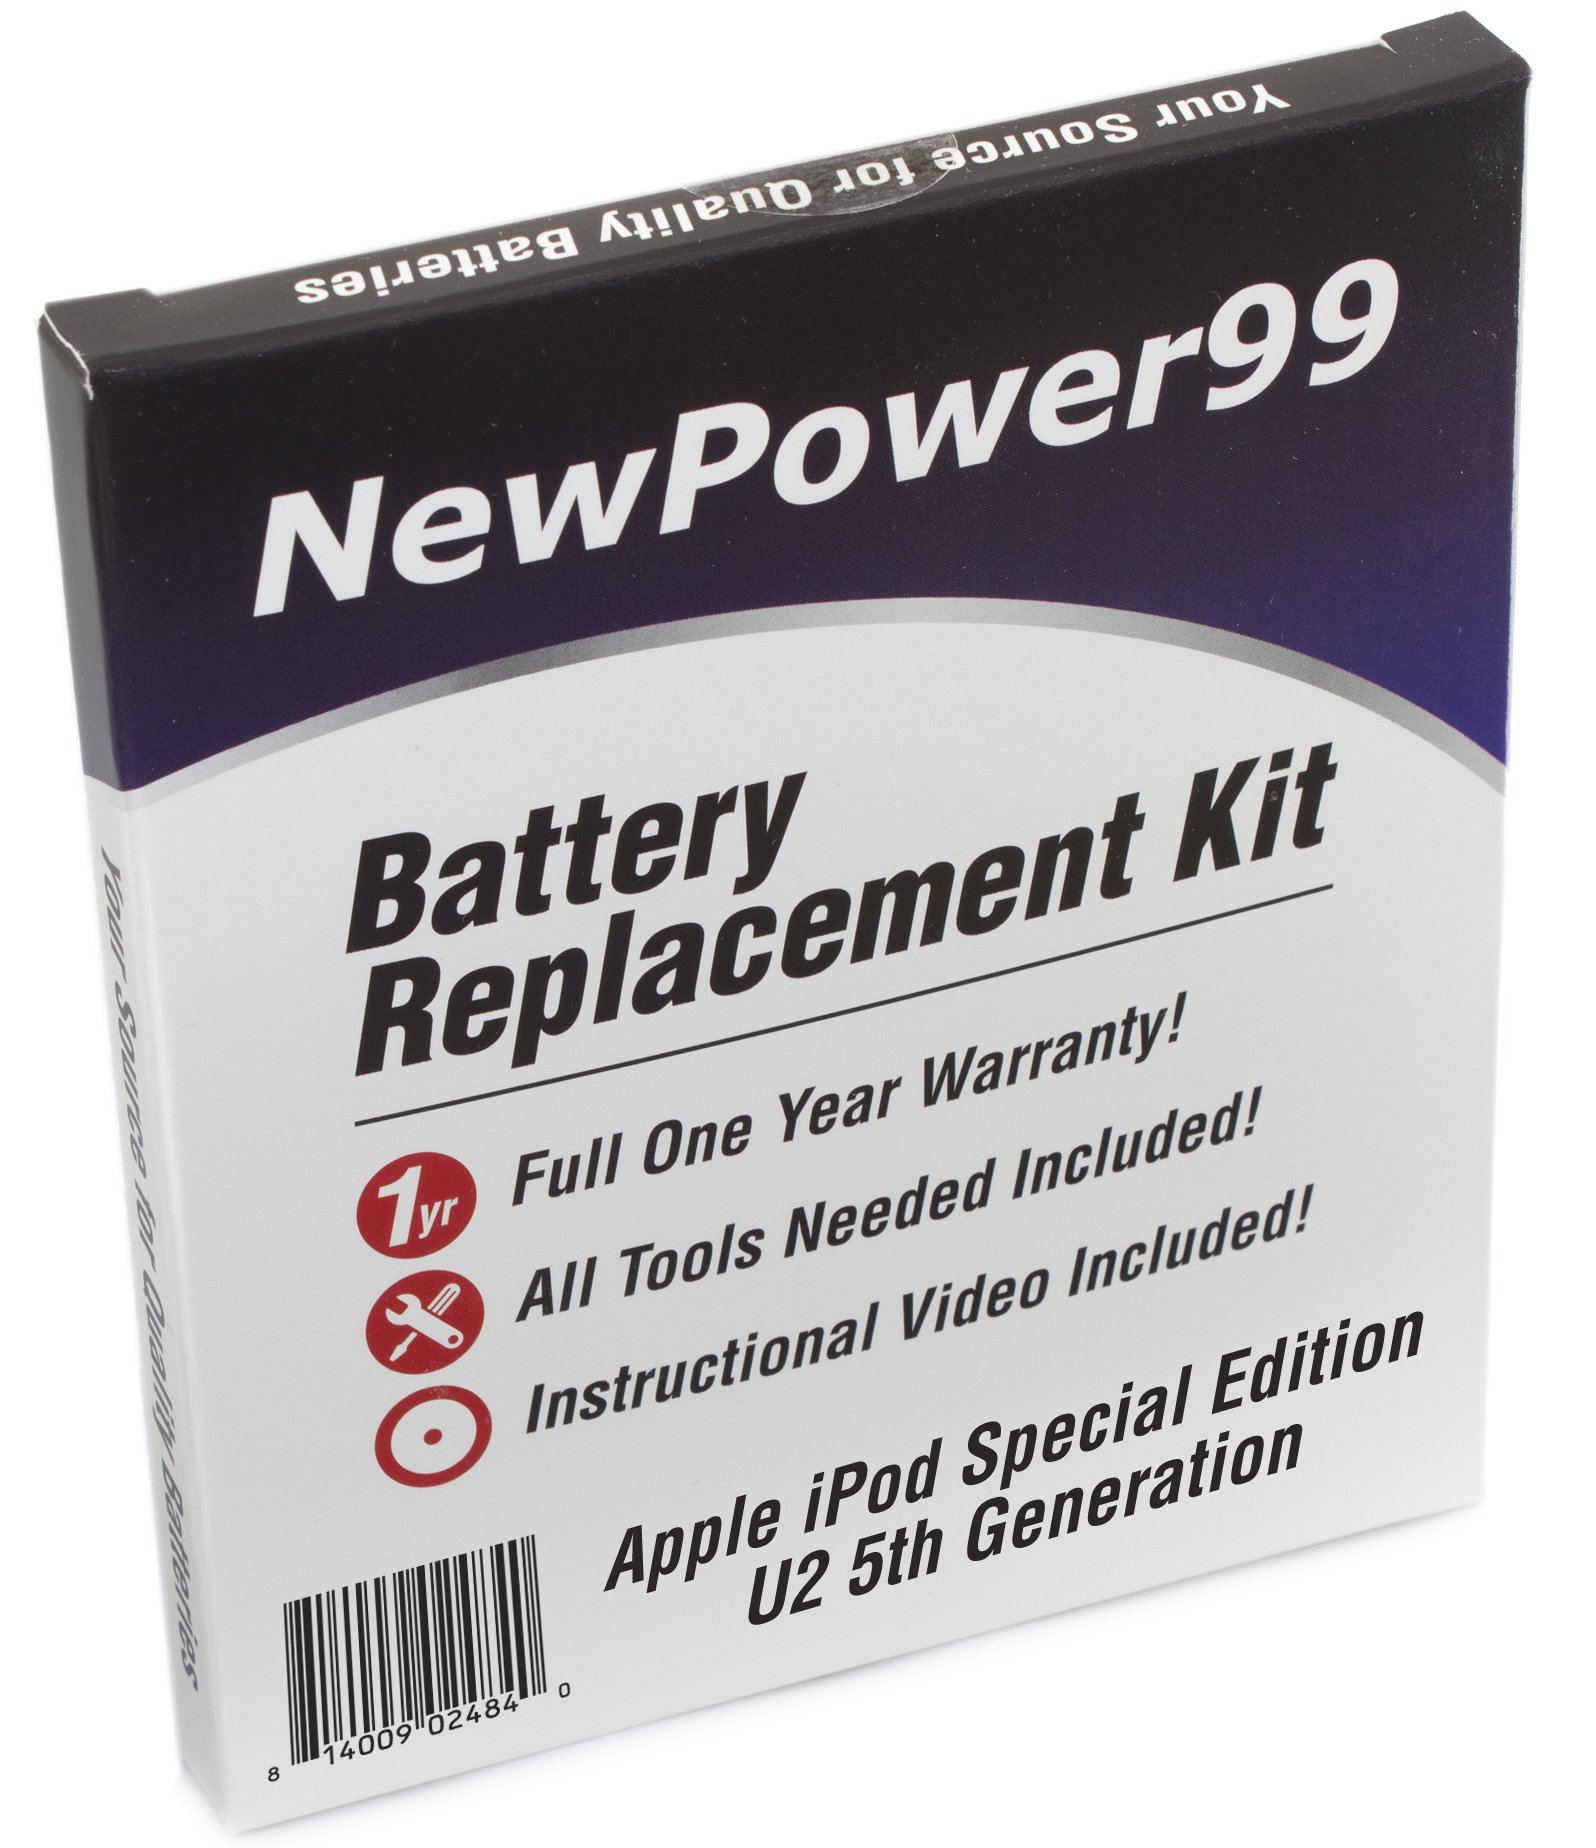 NewPower99 Battery Replacement Kit for iPod Special Edition U2 5th Generation with Installation Video, Tools, and Extended Life Battery.